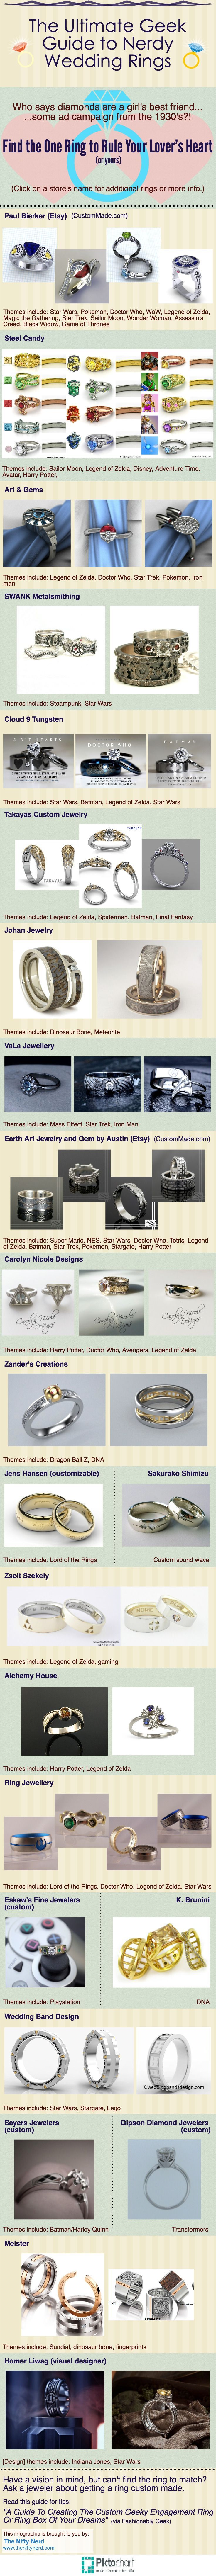 Geek Wedding Ring Guide